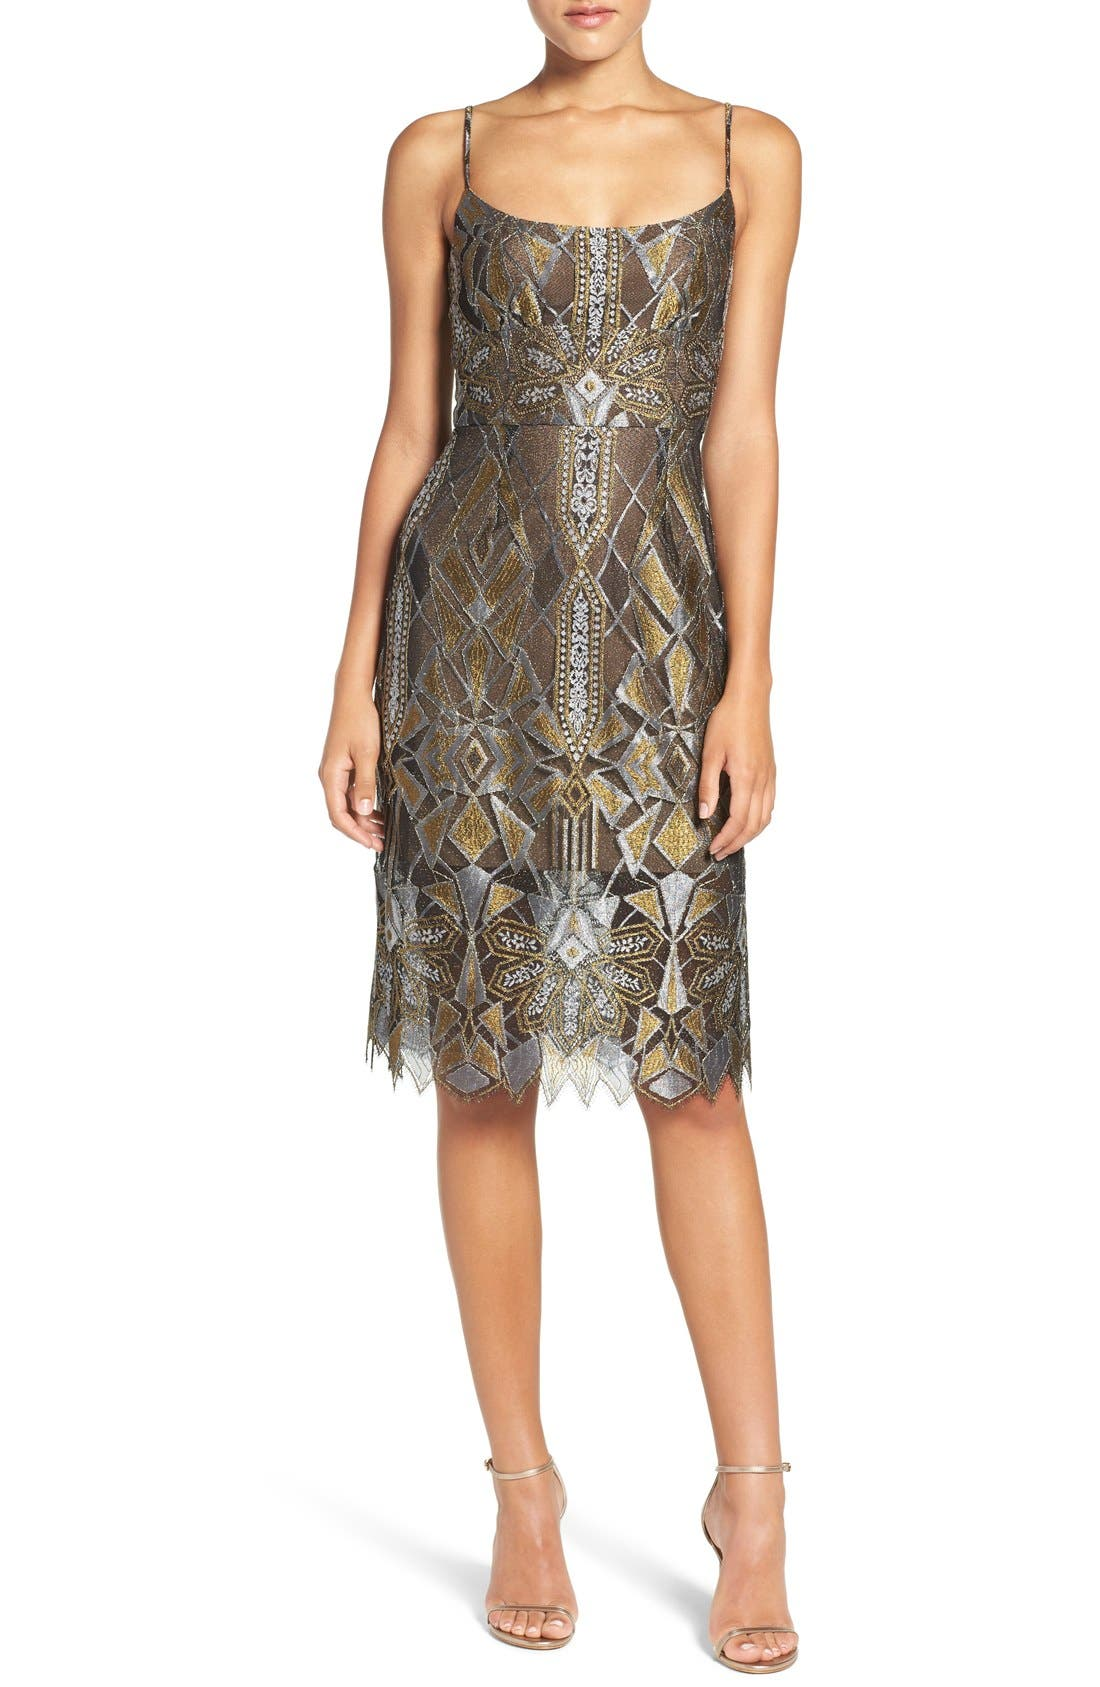 Main Image - BCBGMAXAZRIA 'Alese' Metallic Lace Slipdress